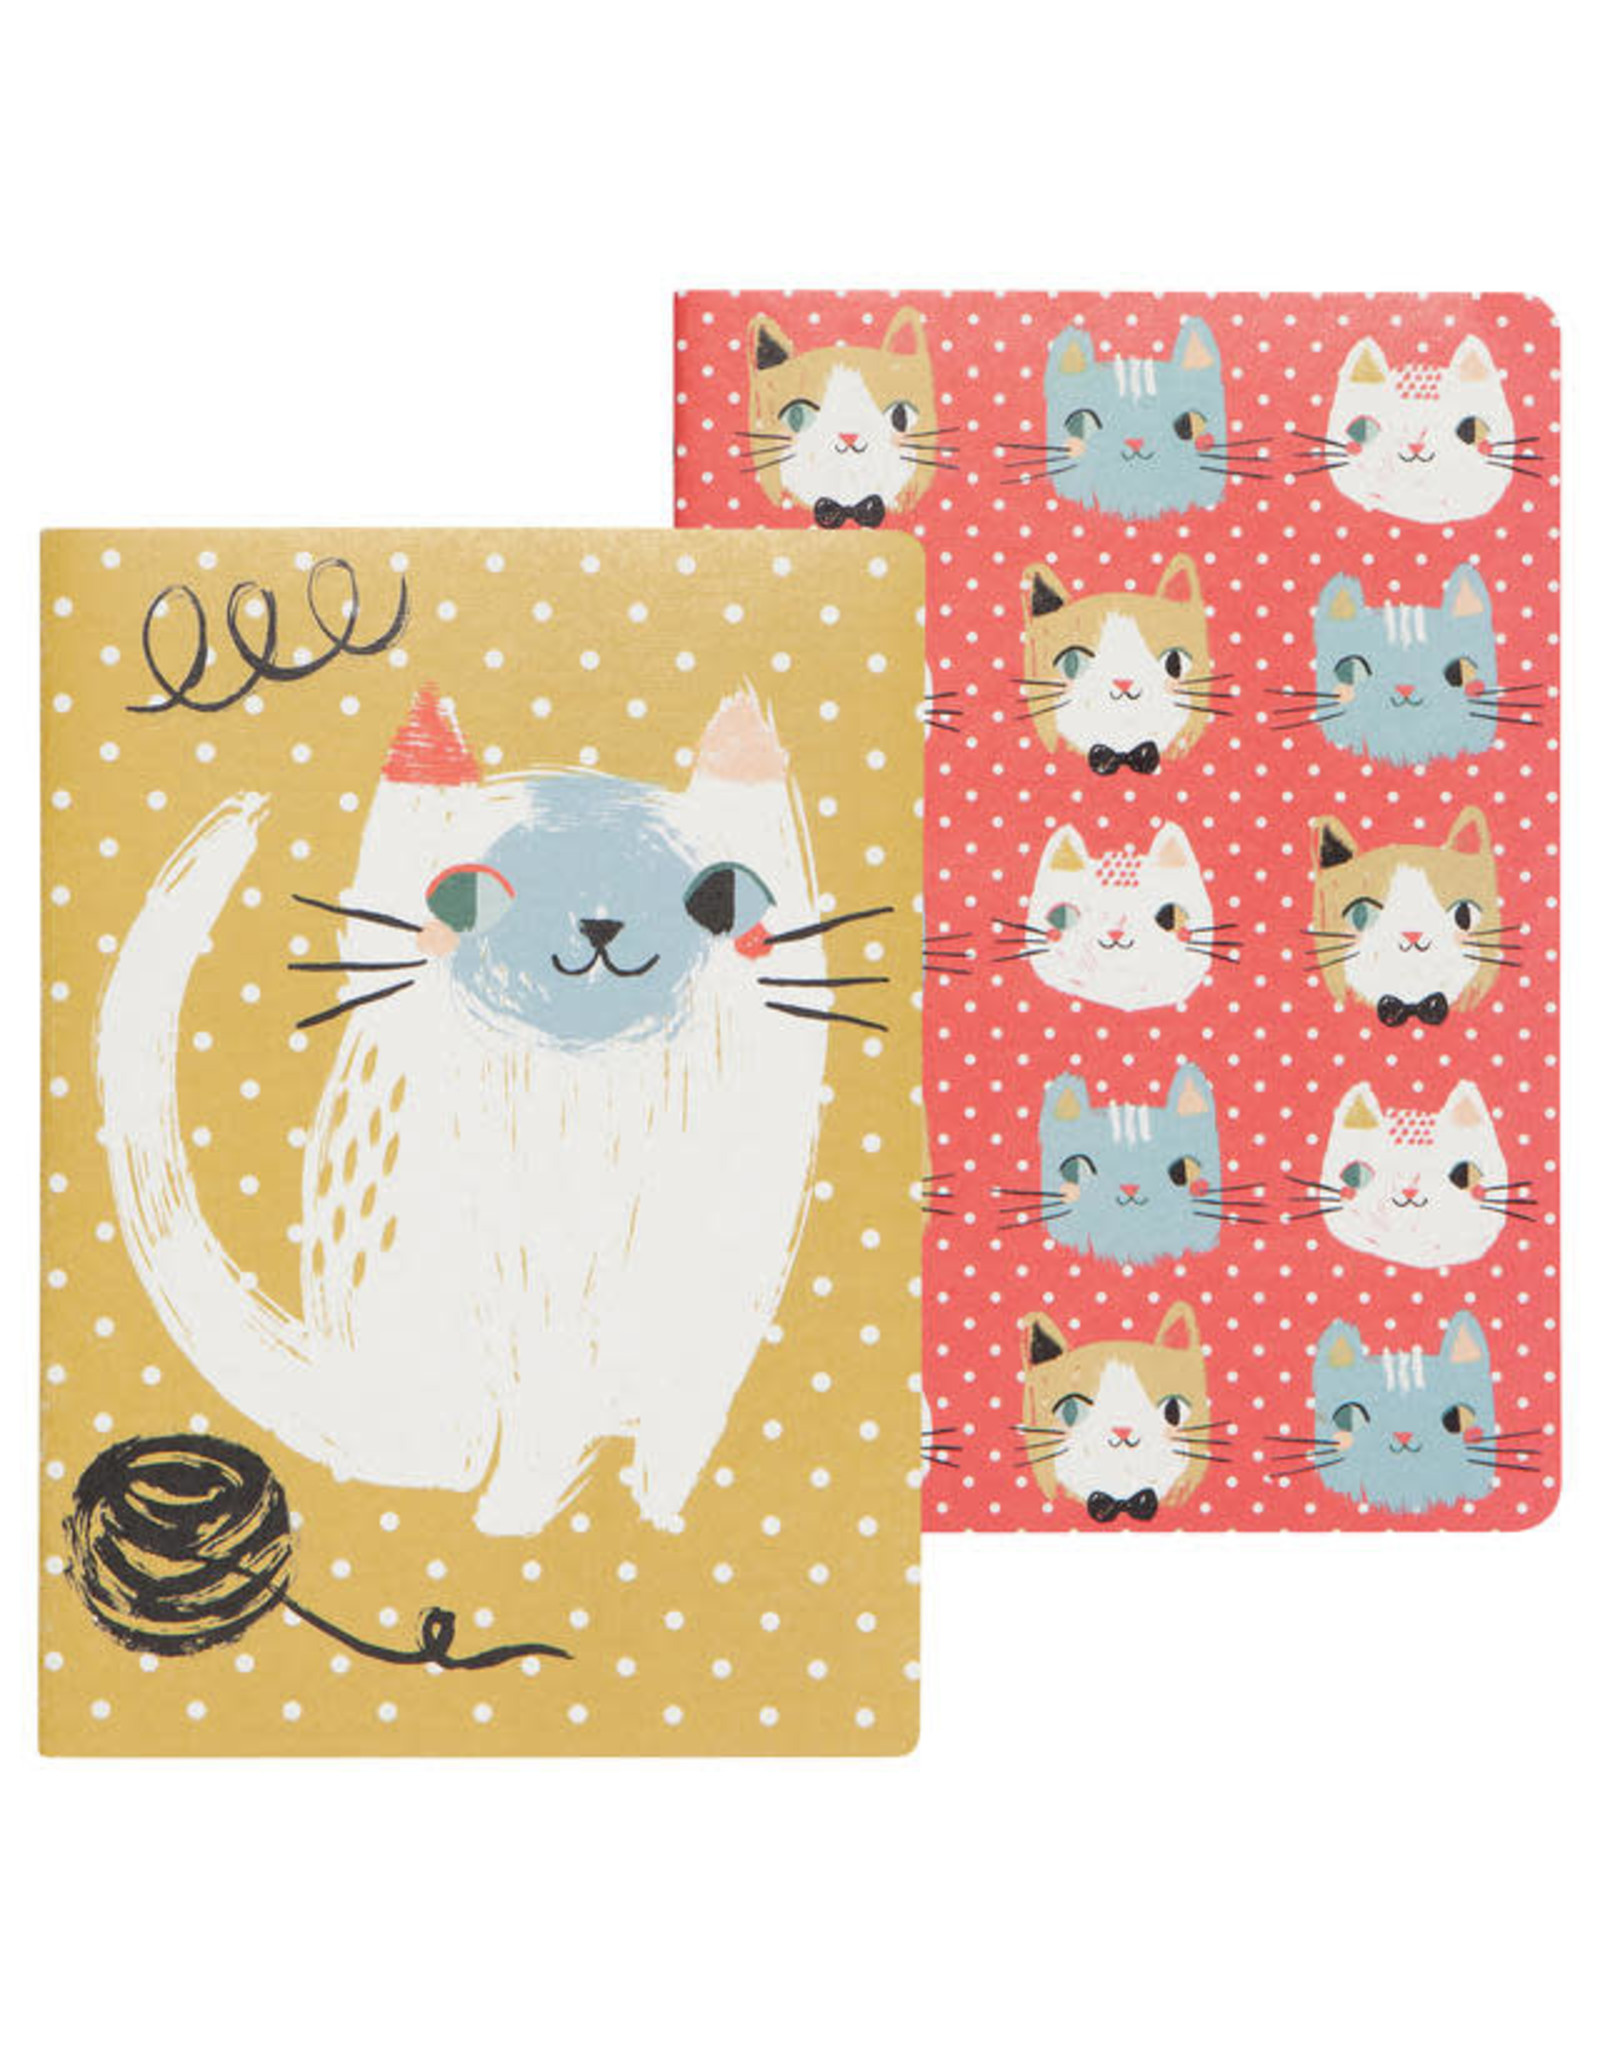 Meow Meow Notebook S/2